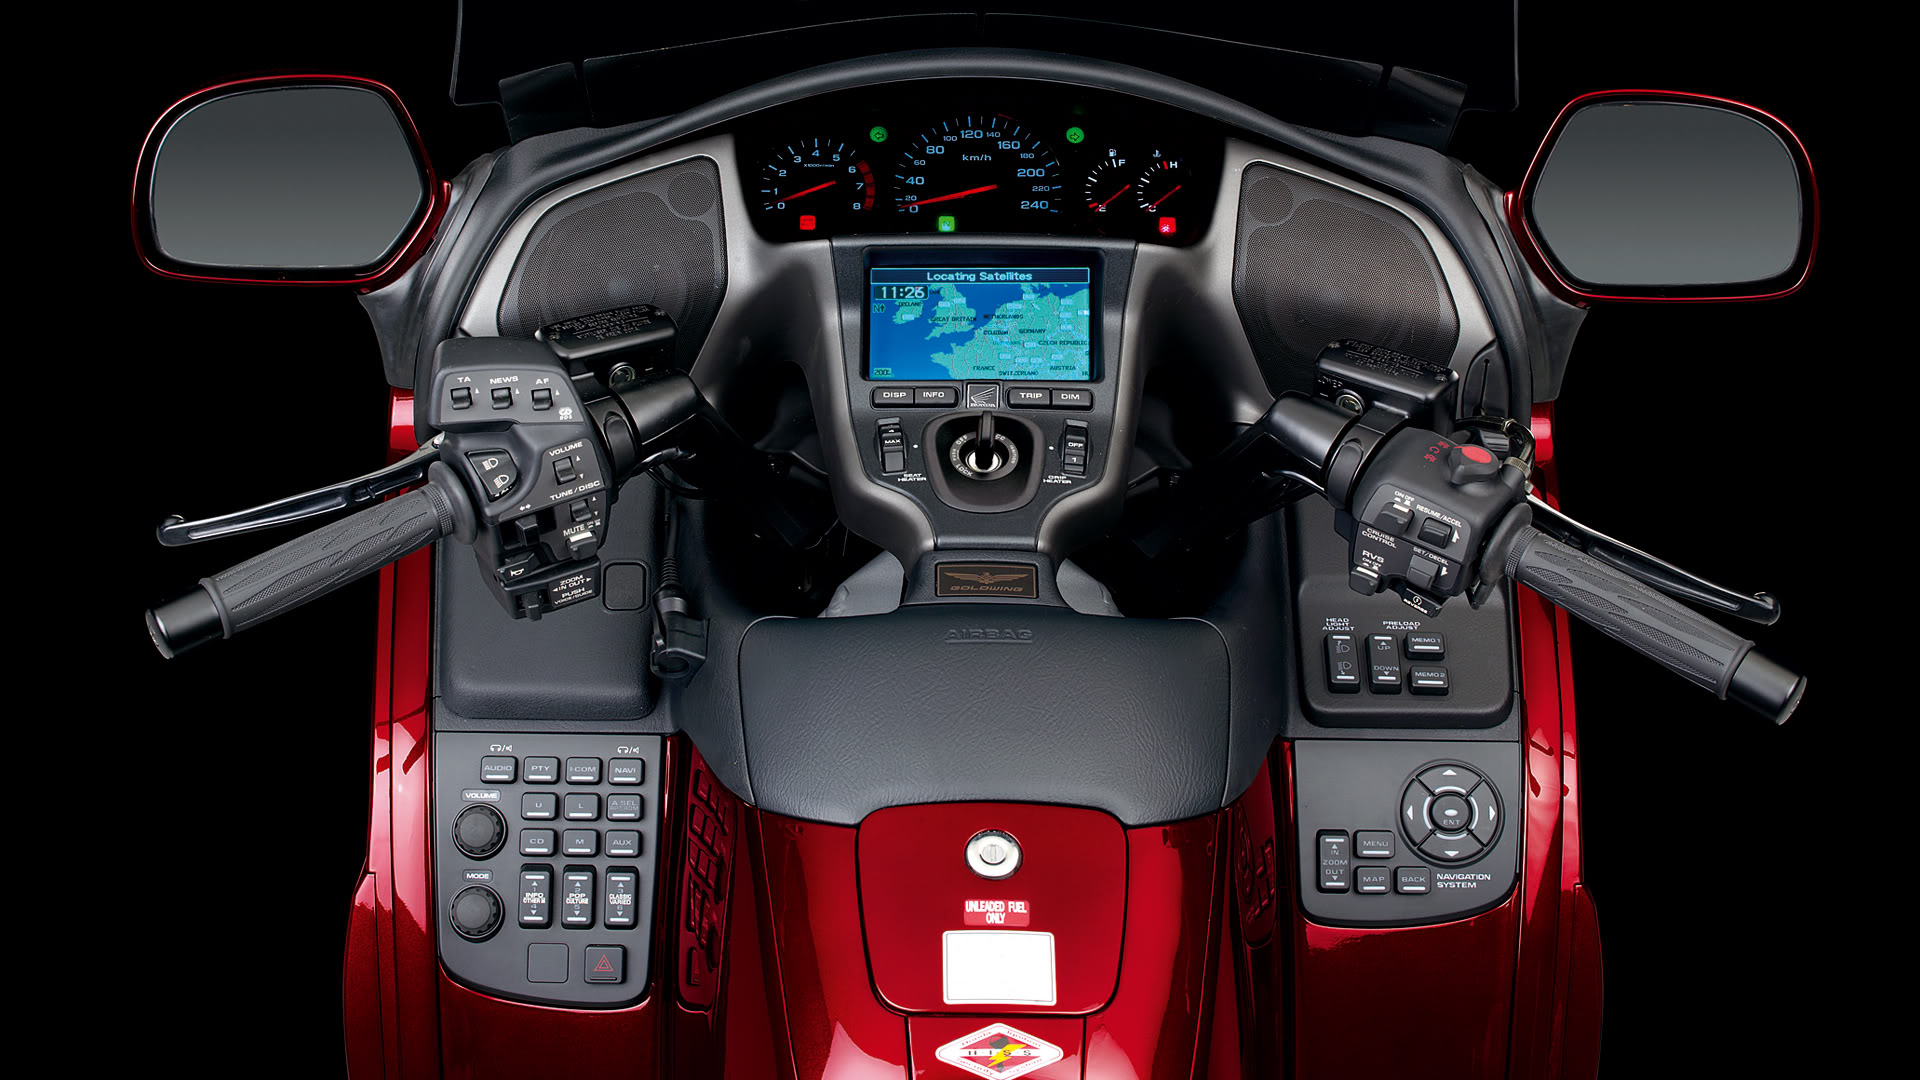 Honda Goldwing Dashboard